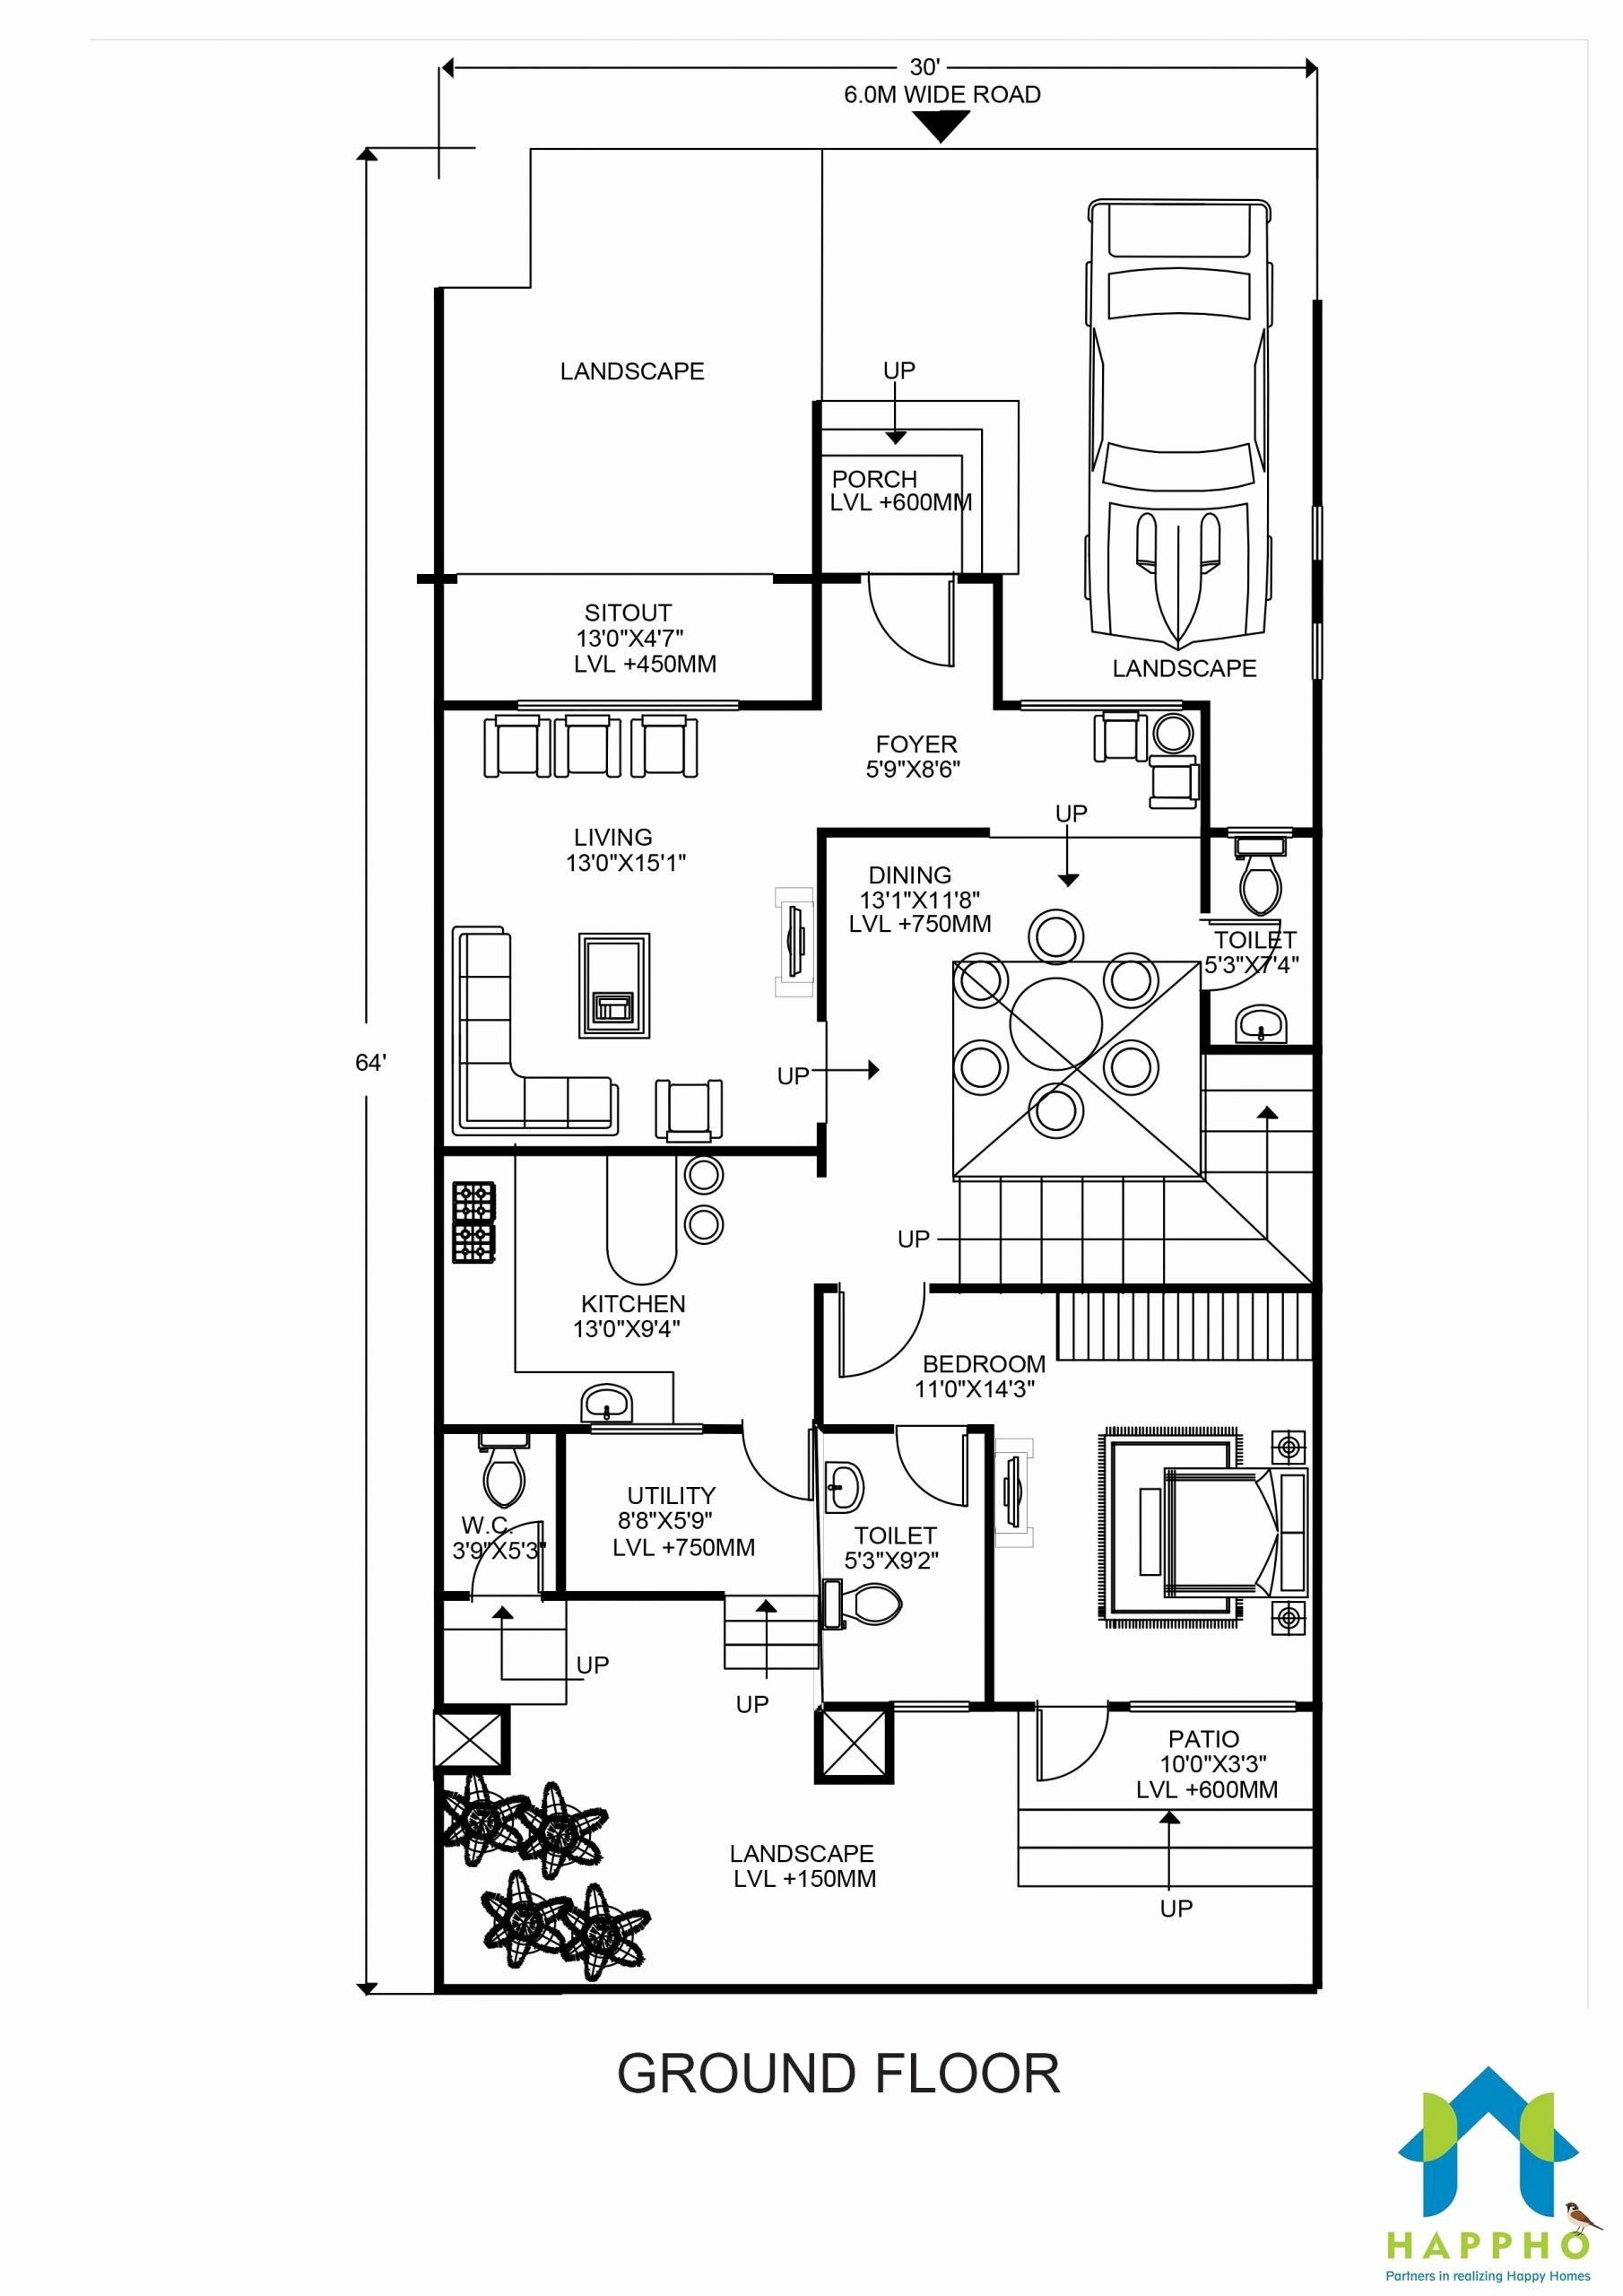 16 Foot Wide House Plans Lovely Floor Plan For 30 X 65 Feet Plot House Plans Unique Floor Plans Bungalow Style House Plans